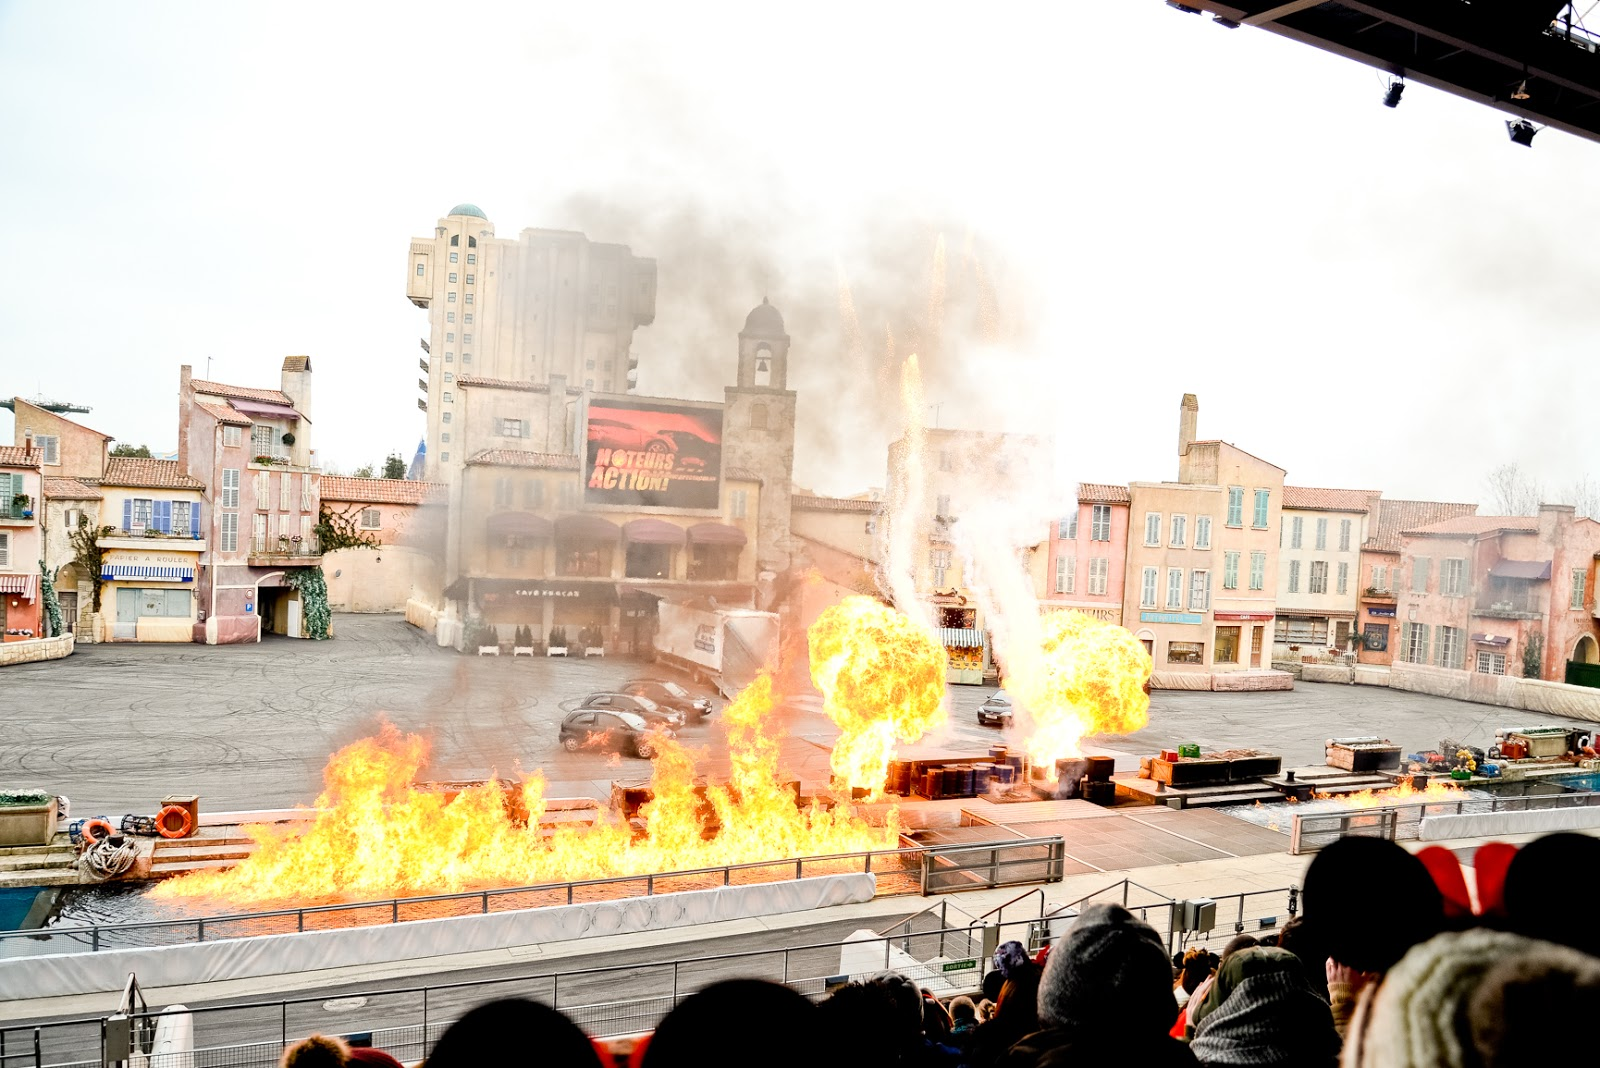 stunt show disneyland, first time at disneyland paris, disneyland paris travel blog, disneyland, disneyland paris highlights, disneyland paris must do, vegetarians at disneyland paris,